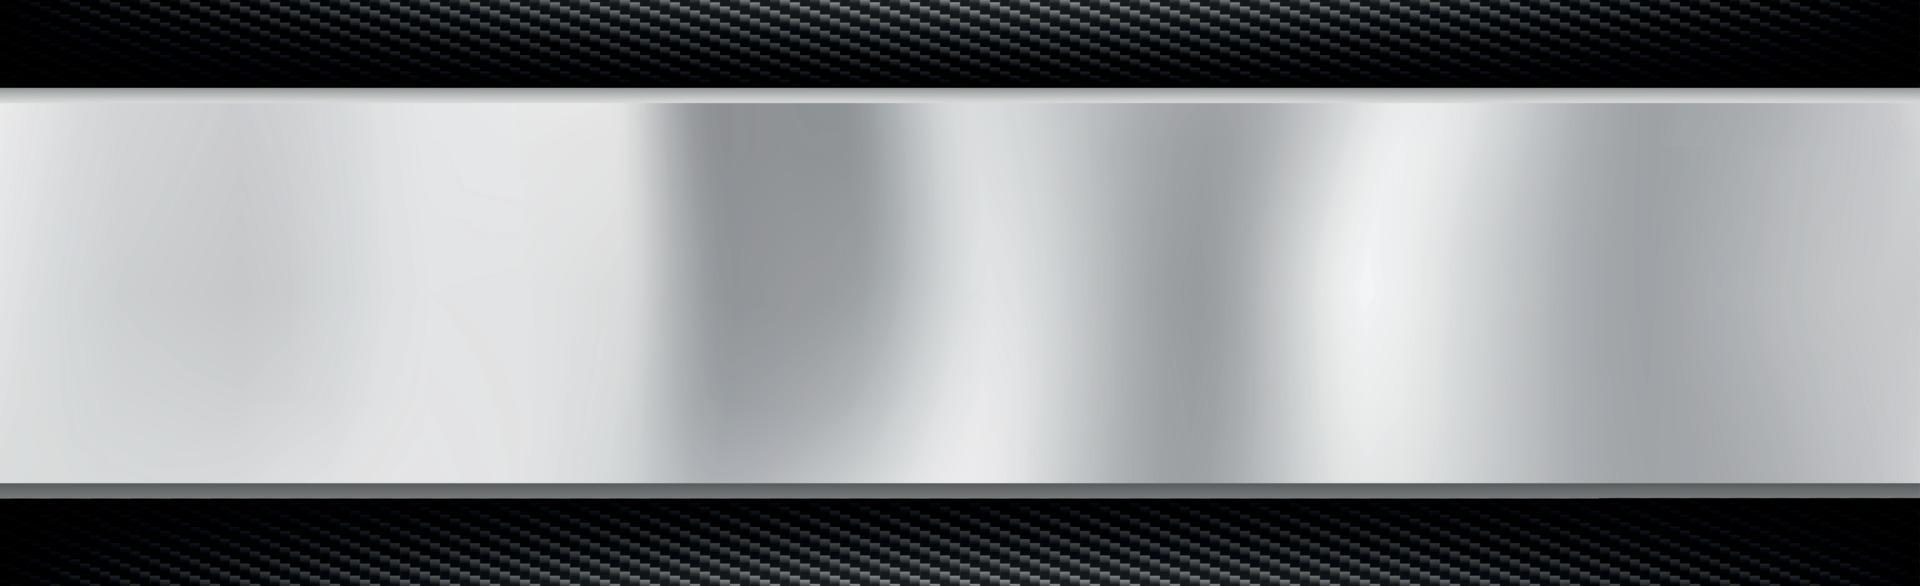 Abstract metal and carbon fiber texture background - Vector illustration